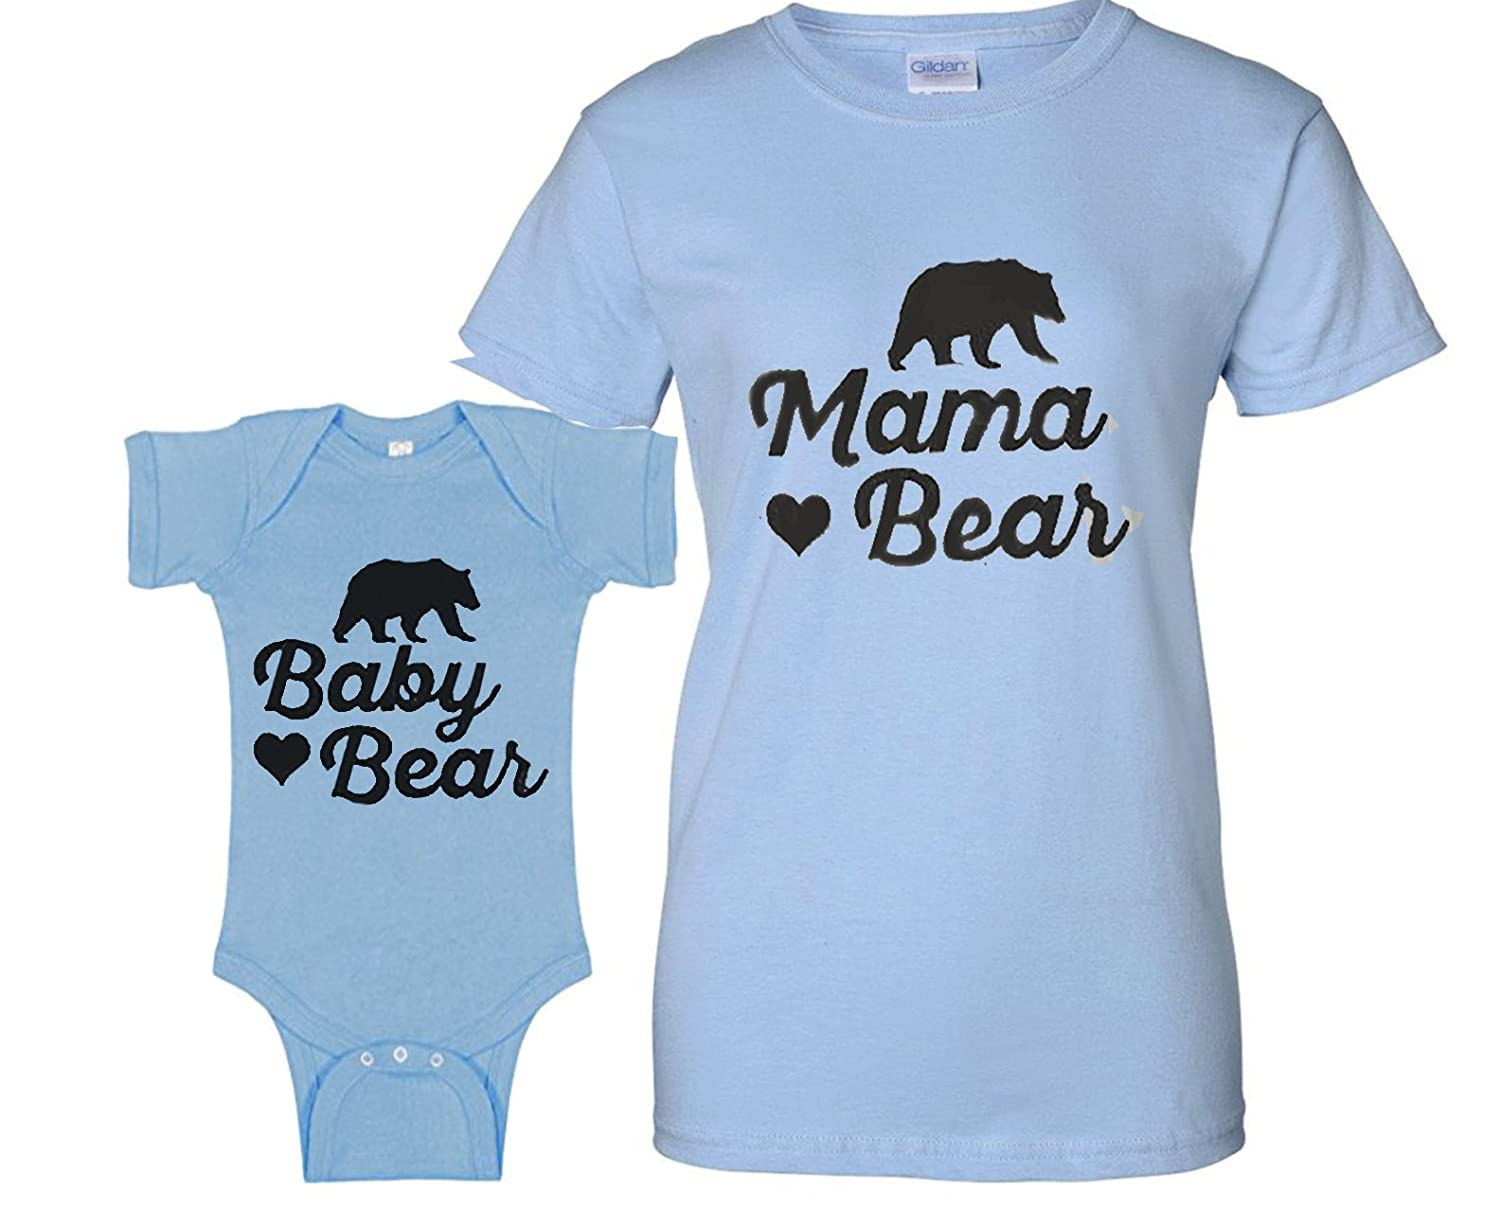 Southern Designs Mama Bear Matching Baby Romper and Mother Fashion Tee by